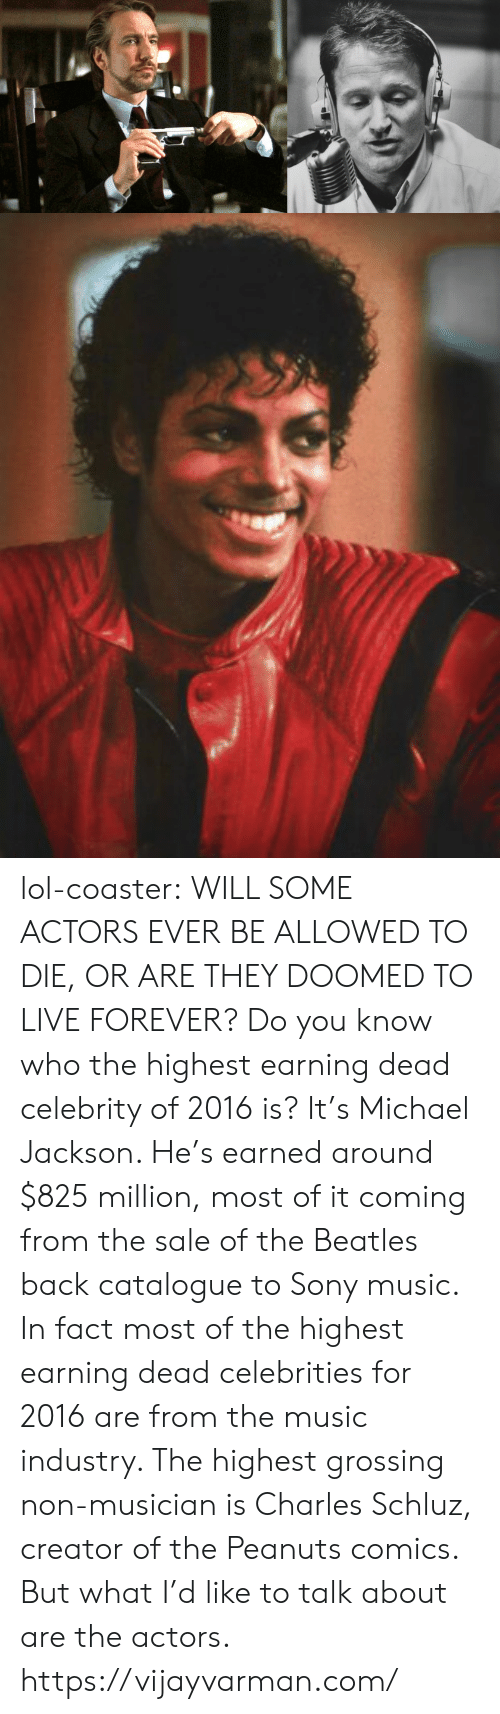 Lol, Michael Jackson, and Music: lol-coaster:   WILL SOME ACTORS EVER BE ALLOWED TO DIE, OR ARE THEY DOOMED TO LIVE FOREVER? Do you know who the highest earning dead celebrity of 2016 is? It's Michael Jackson. He's earned around $825 million, most of it coming from the sale of the Beatles back catalogue to Sony music. In fact most of the highest earning dead celebrities for 2016 are from the music industry. The highest grossing non-musician is Charles Schluz, creator of the Peanuts comics. But what I'd like to talk about are the actors. https://vijayvarman.com/